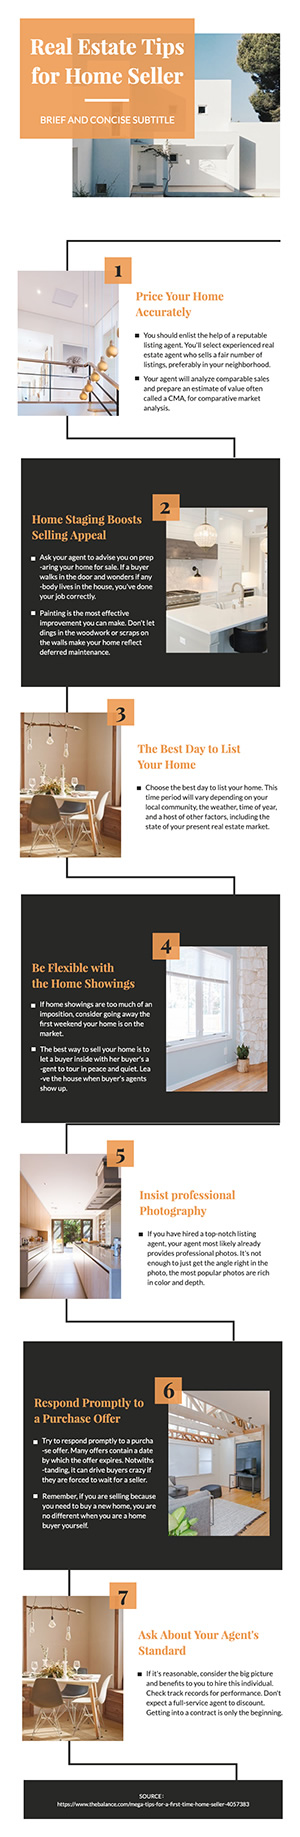 Real Estate Tips Infographic Design